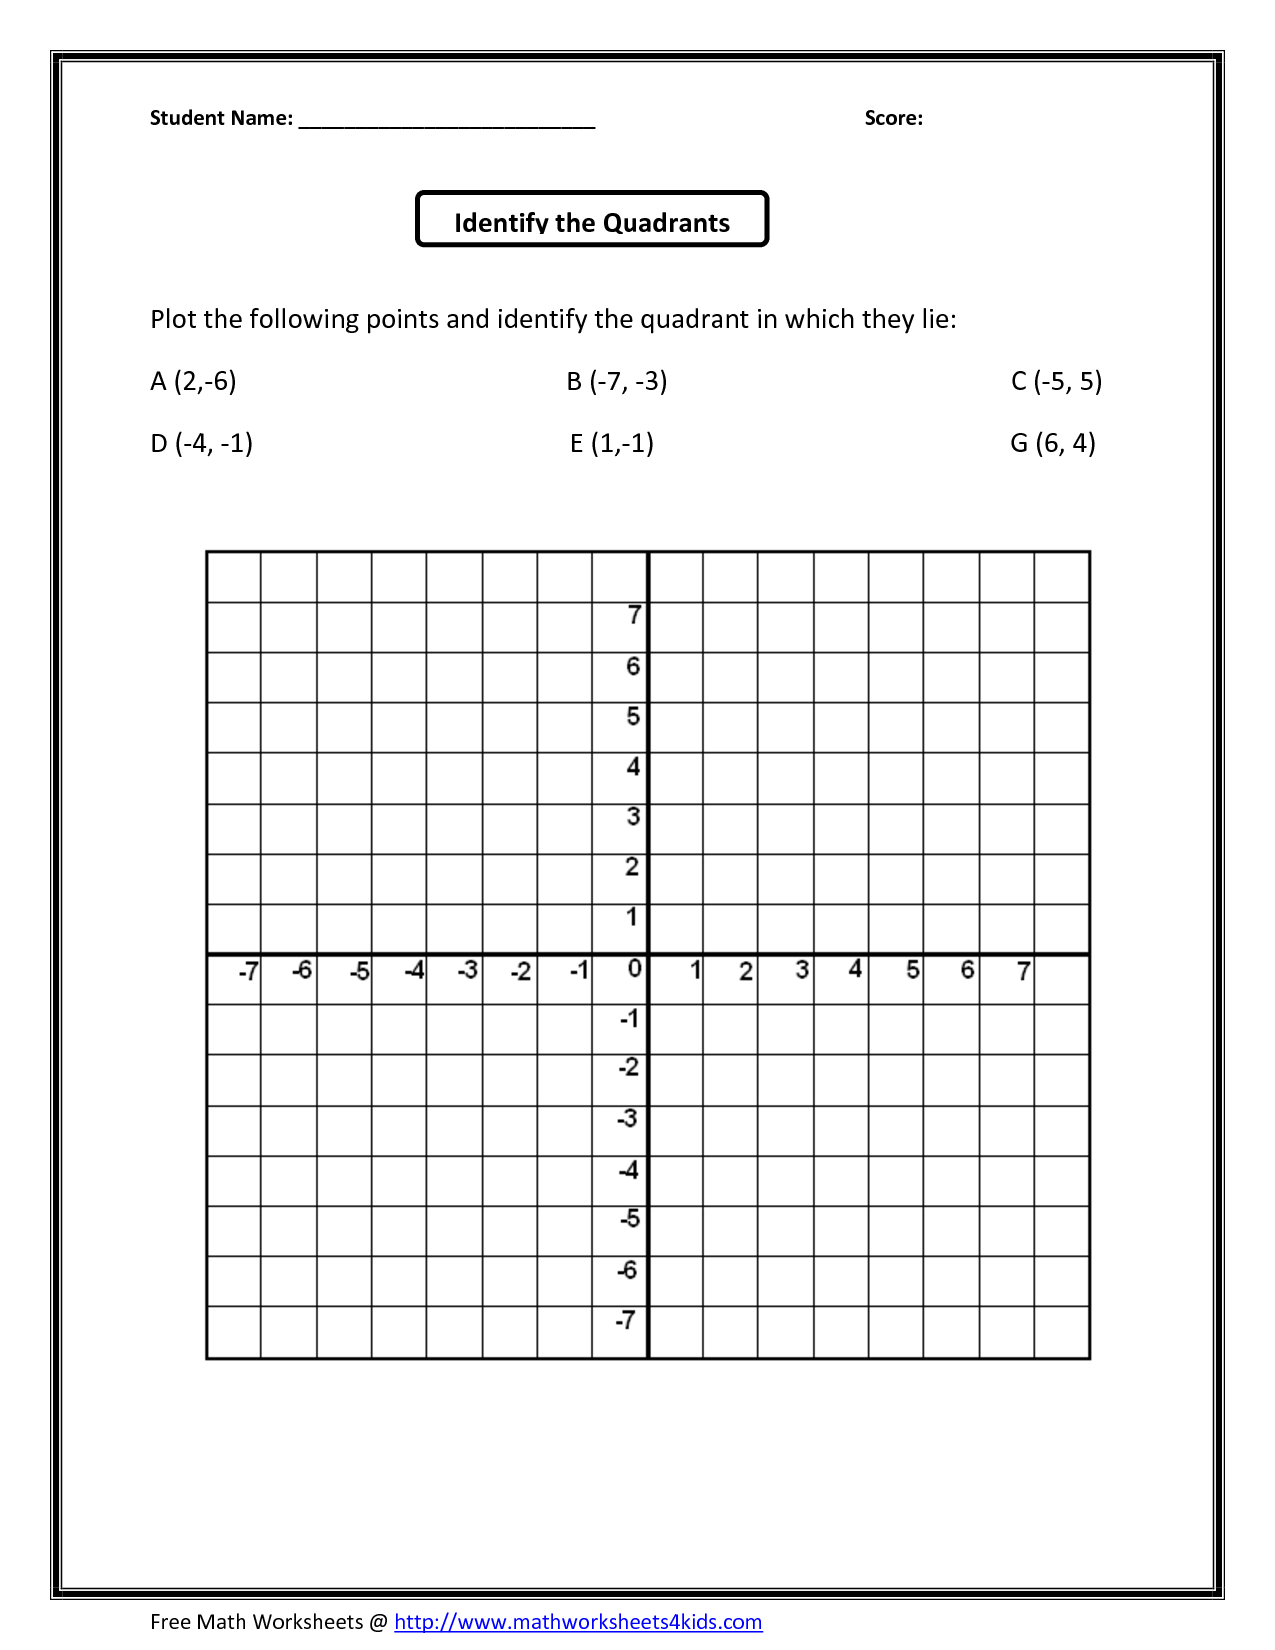 Math : Coordinate Plane Grid Coordinate Template 0 To 12 2 - Free Printable Coordinate Grid Worksheets